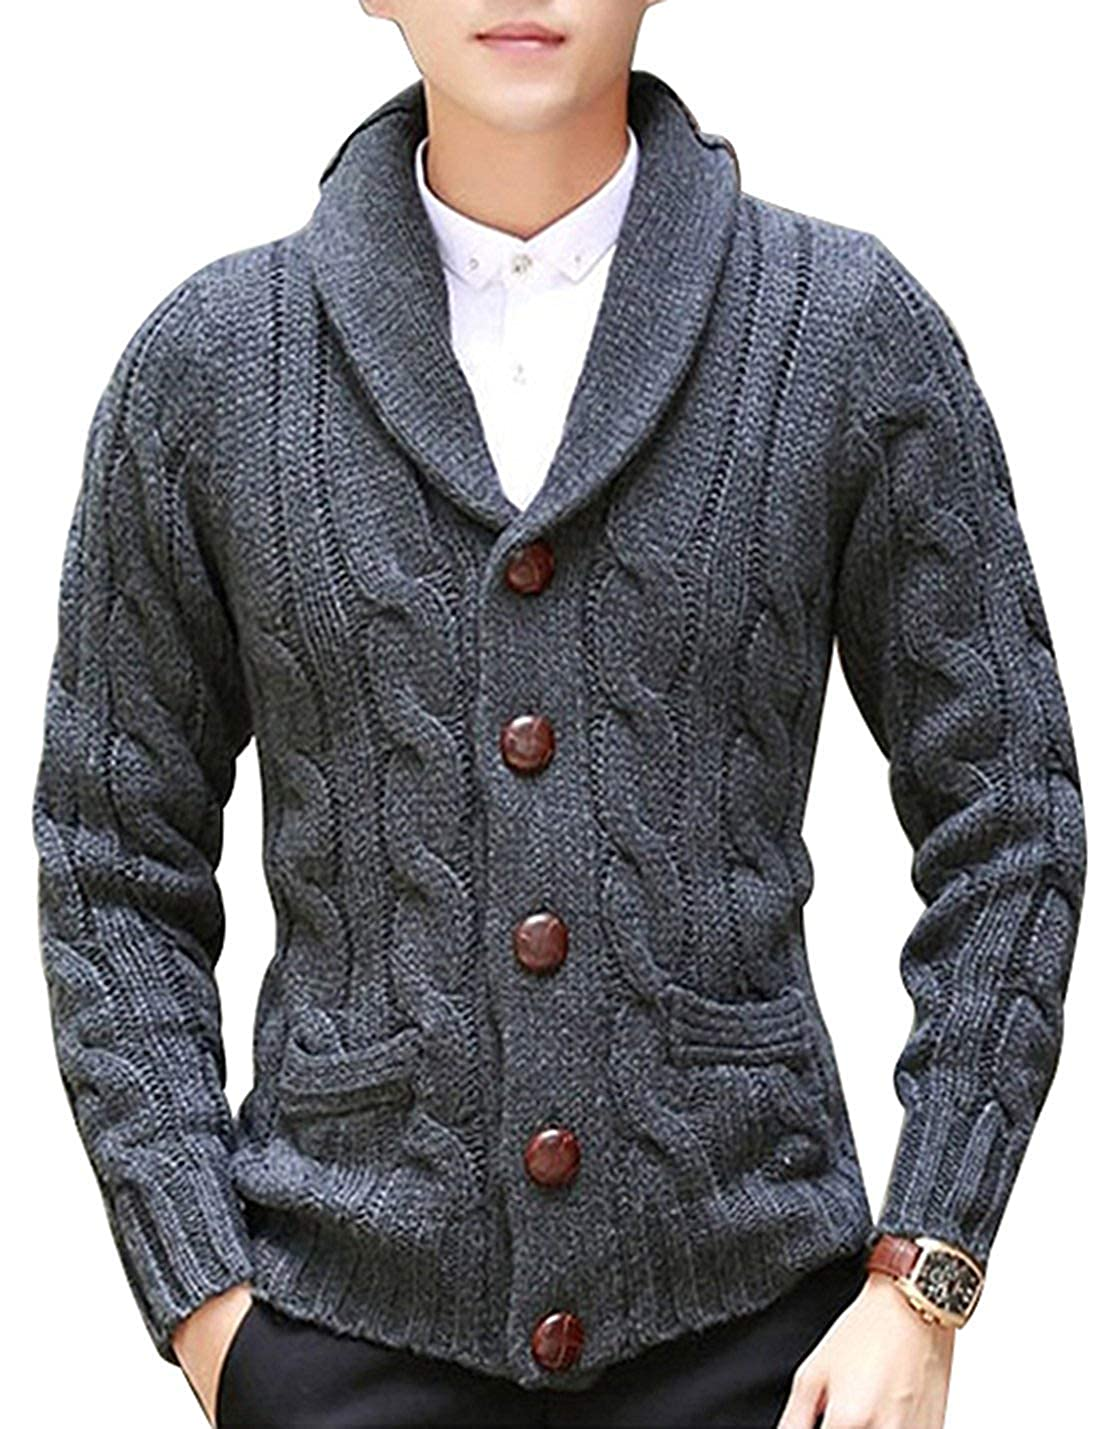 Mens Casual Slim Fit Sweaters with Zipper Cotton Knitted Cardigan